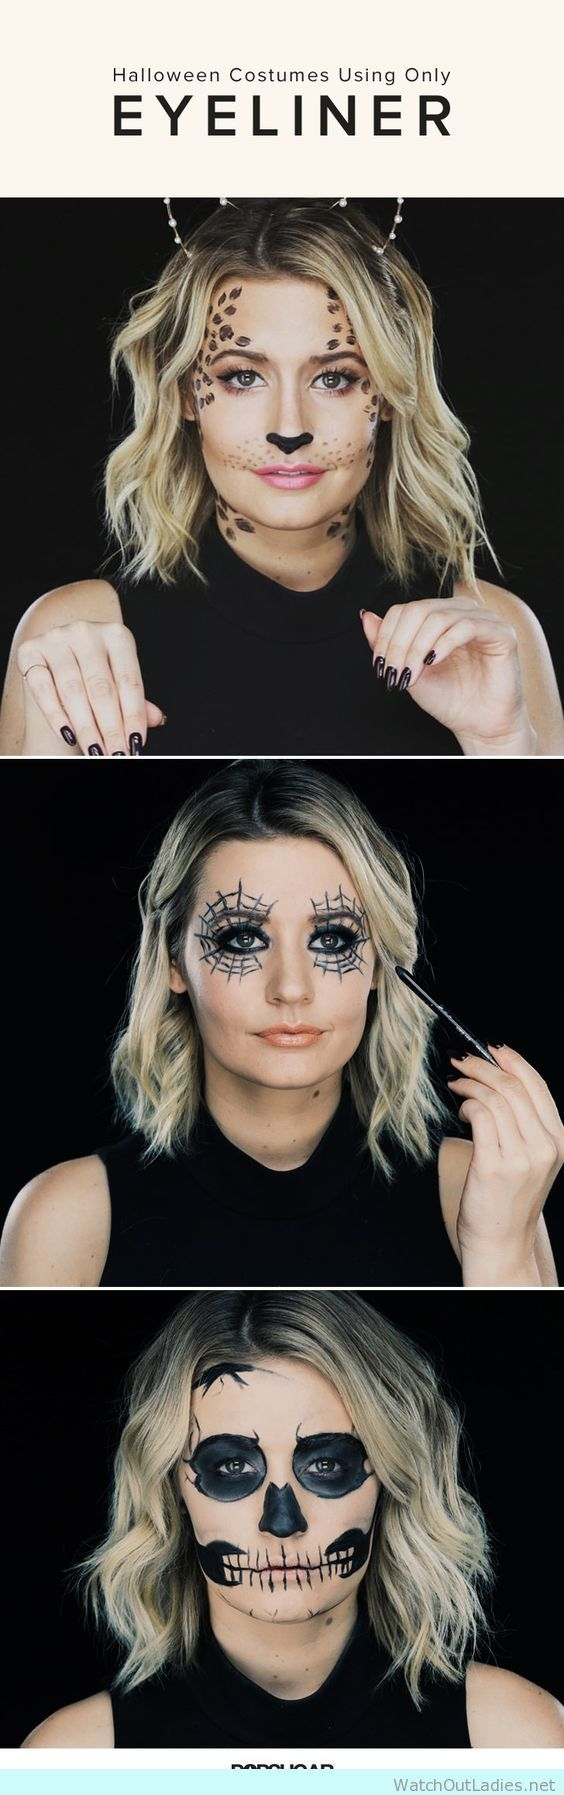 Who thought that you can have an amazing Halloween costume DIY with only an eyeliner?